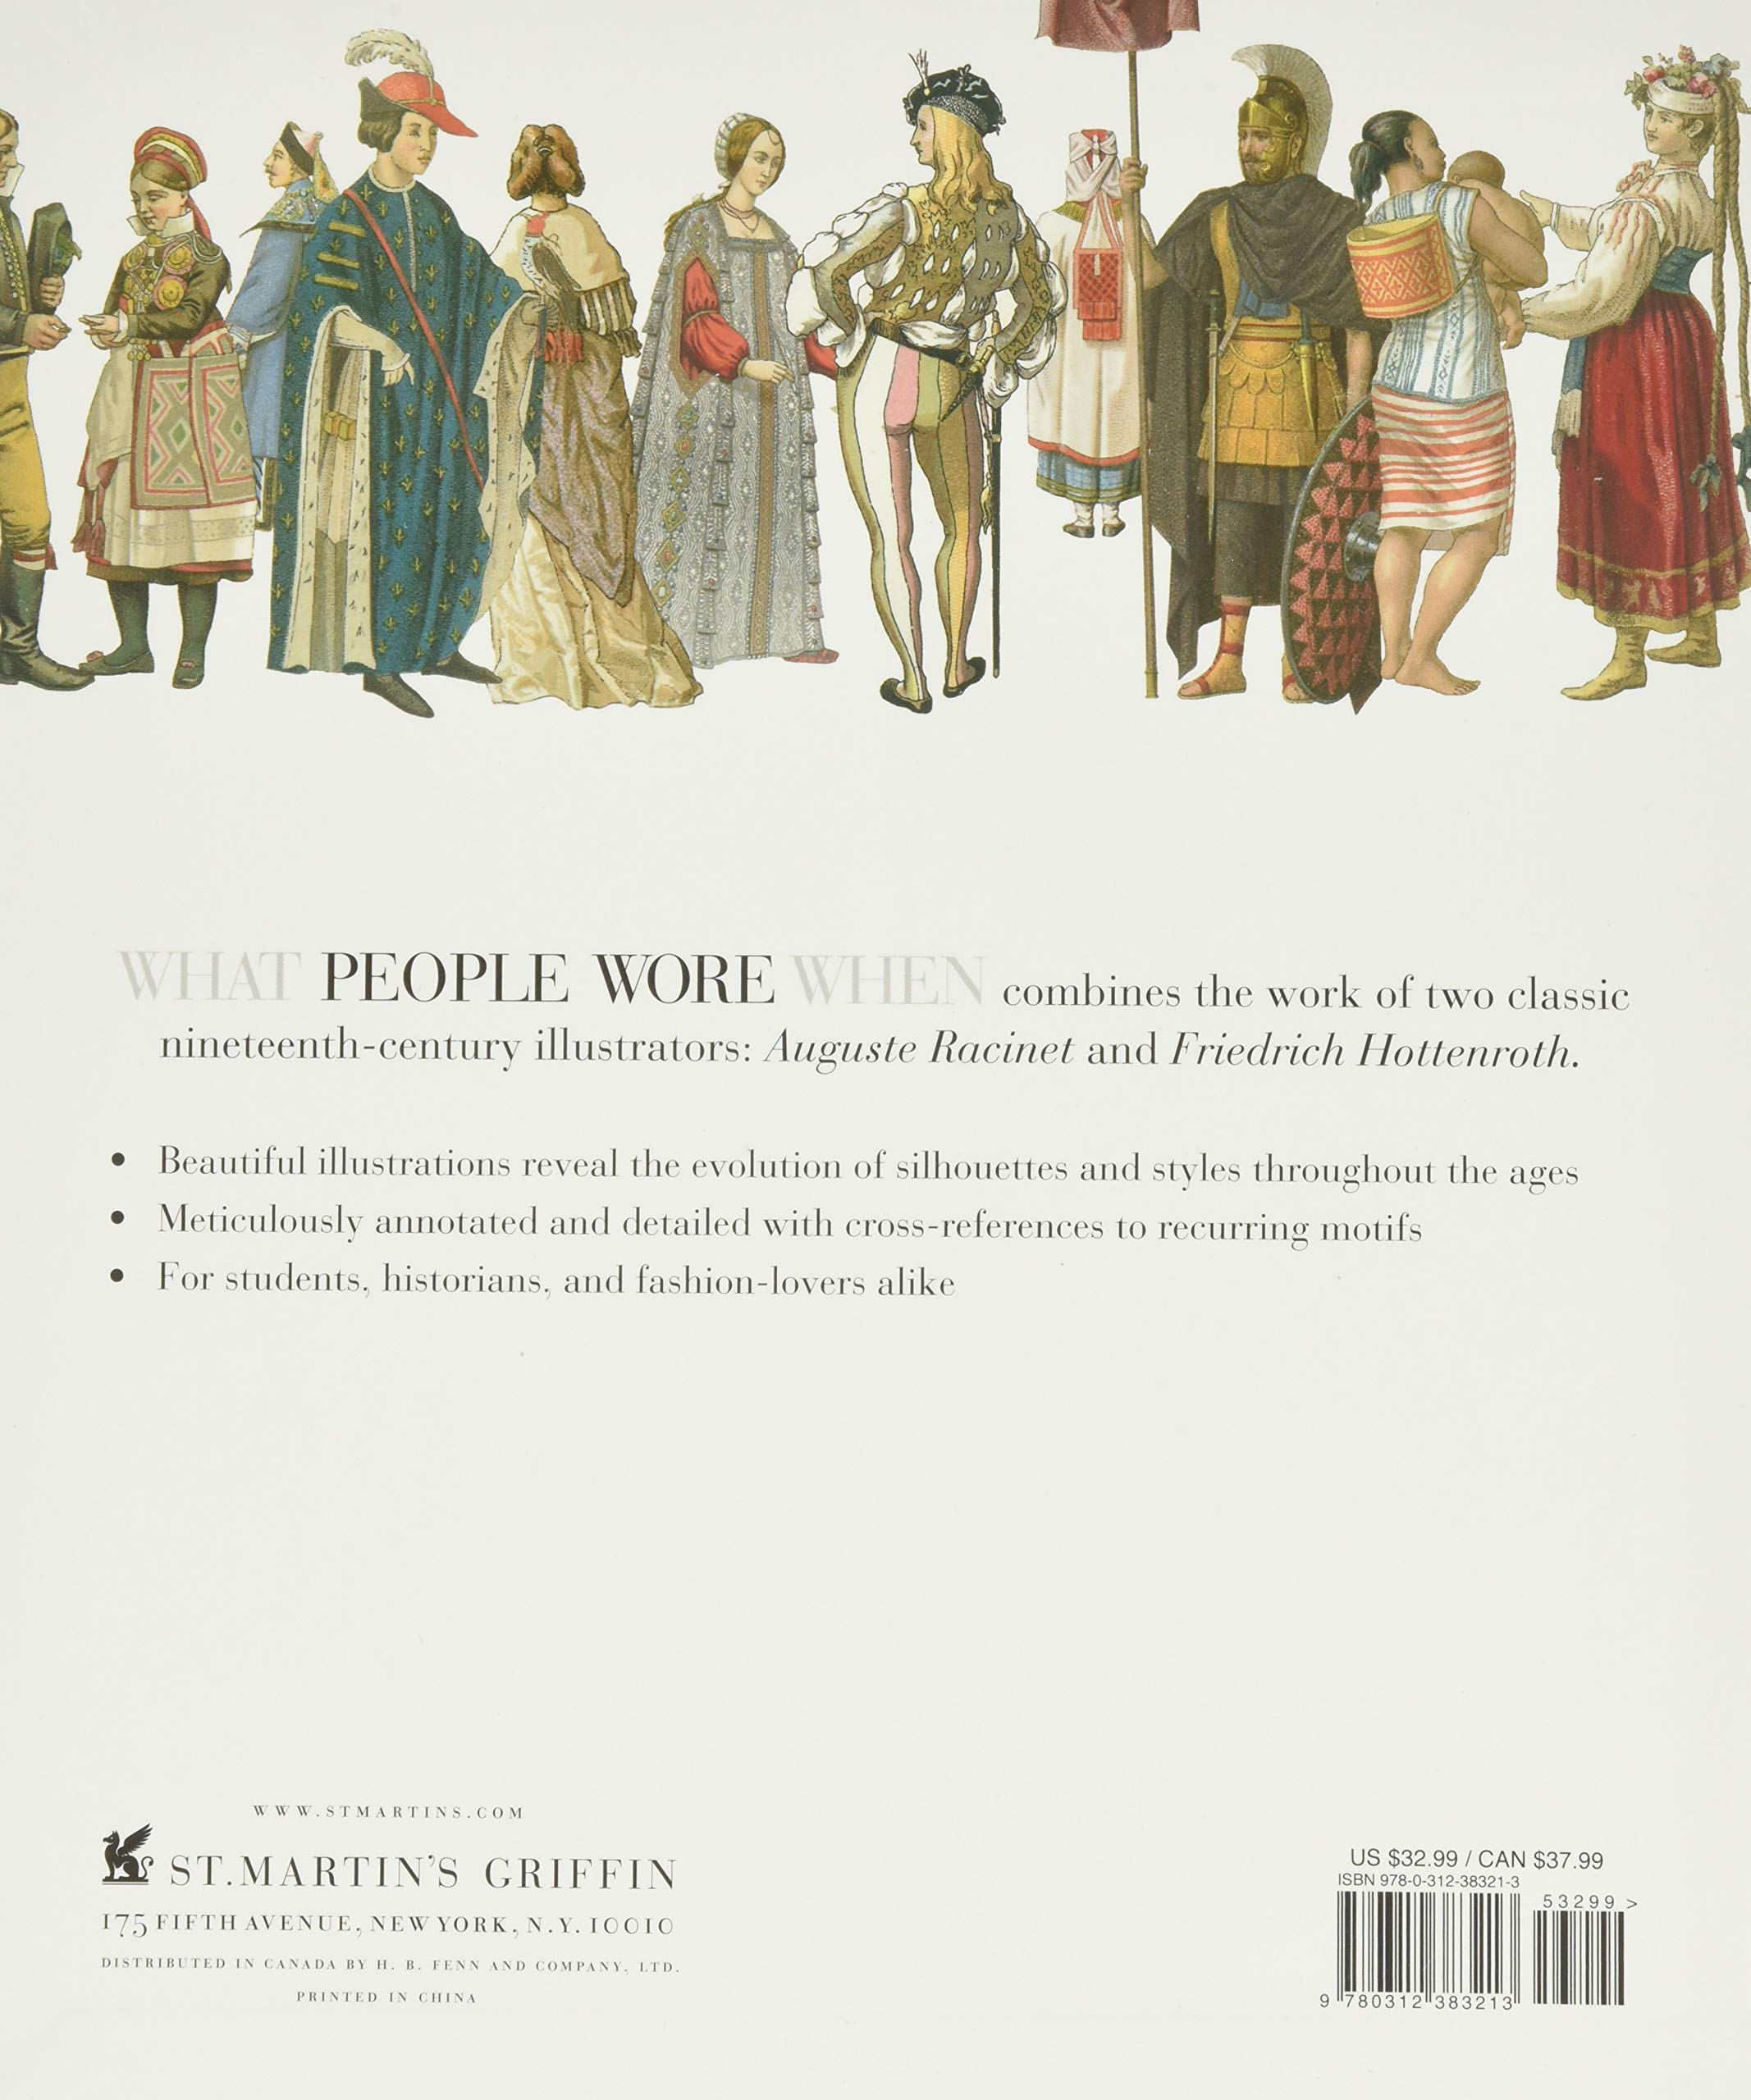 What People Wore When A Complete Illustrated History Of Costume From Ancient Times To The Nineteenth Century For Every Level Of Society Leventon Melissa 9780312383213 Amazon Com Books